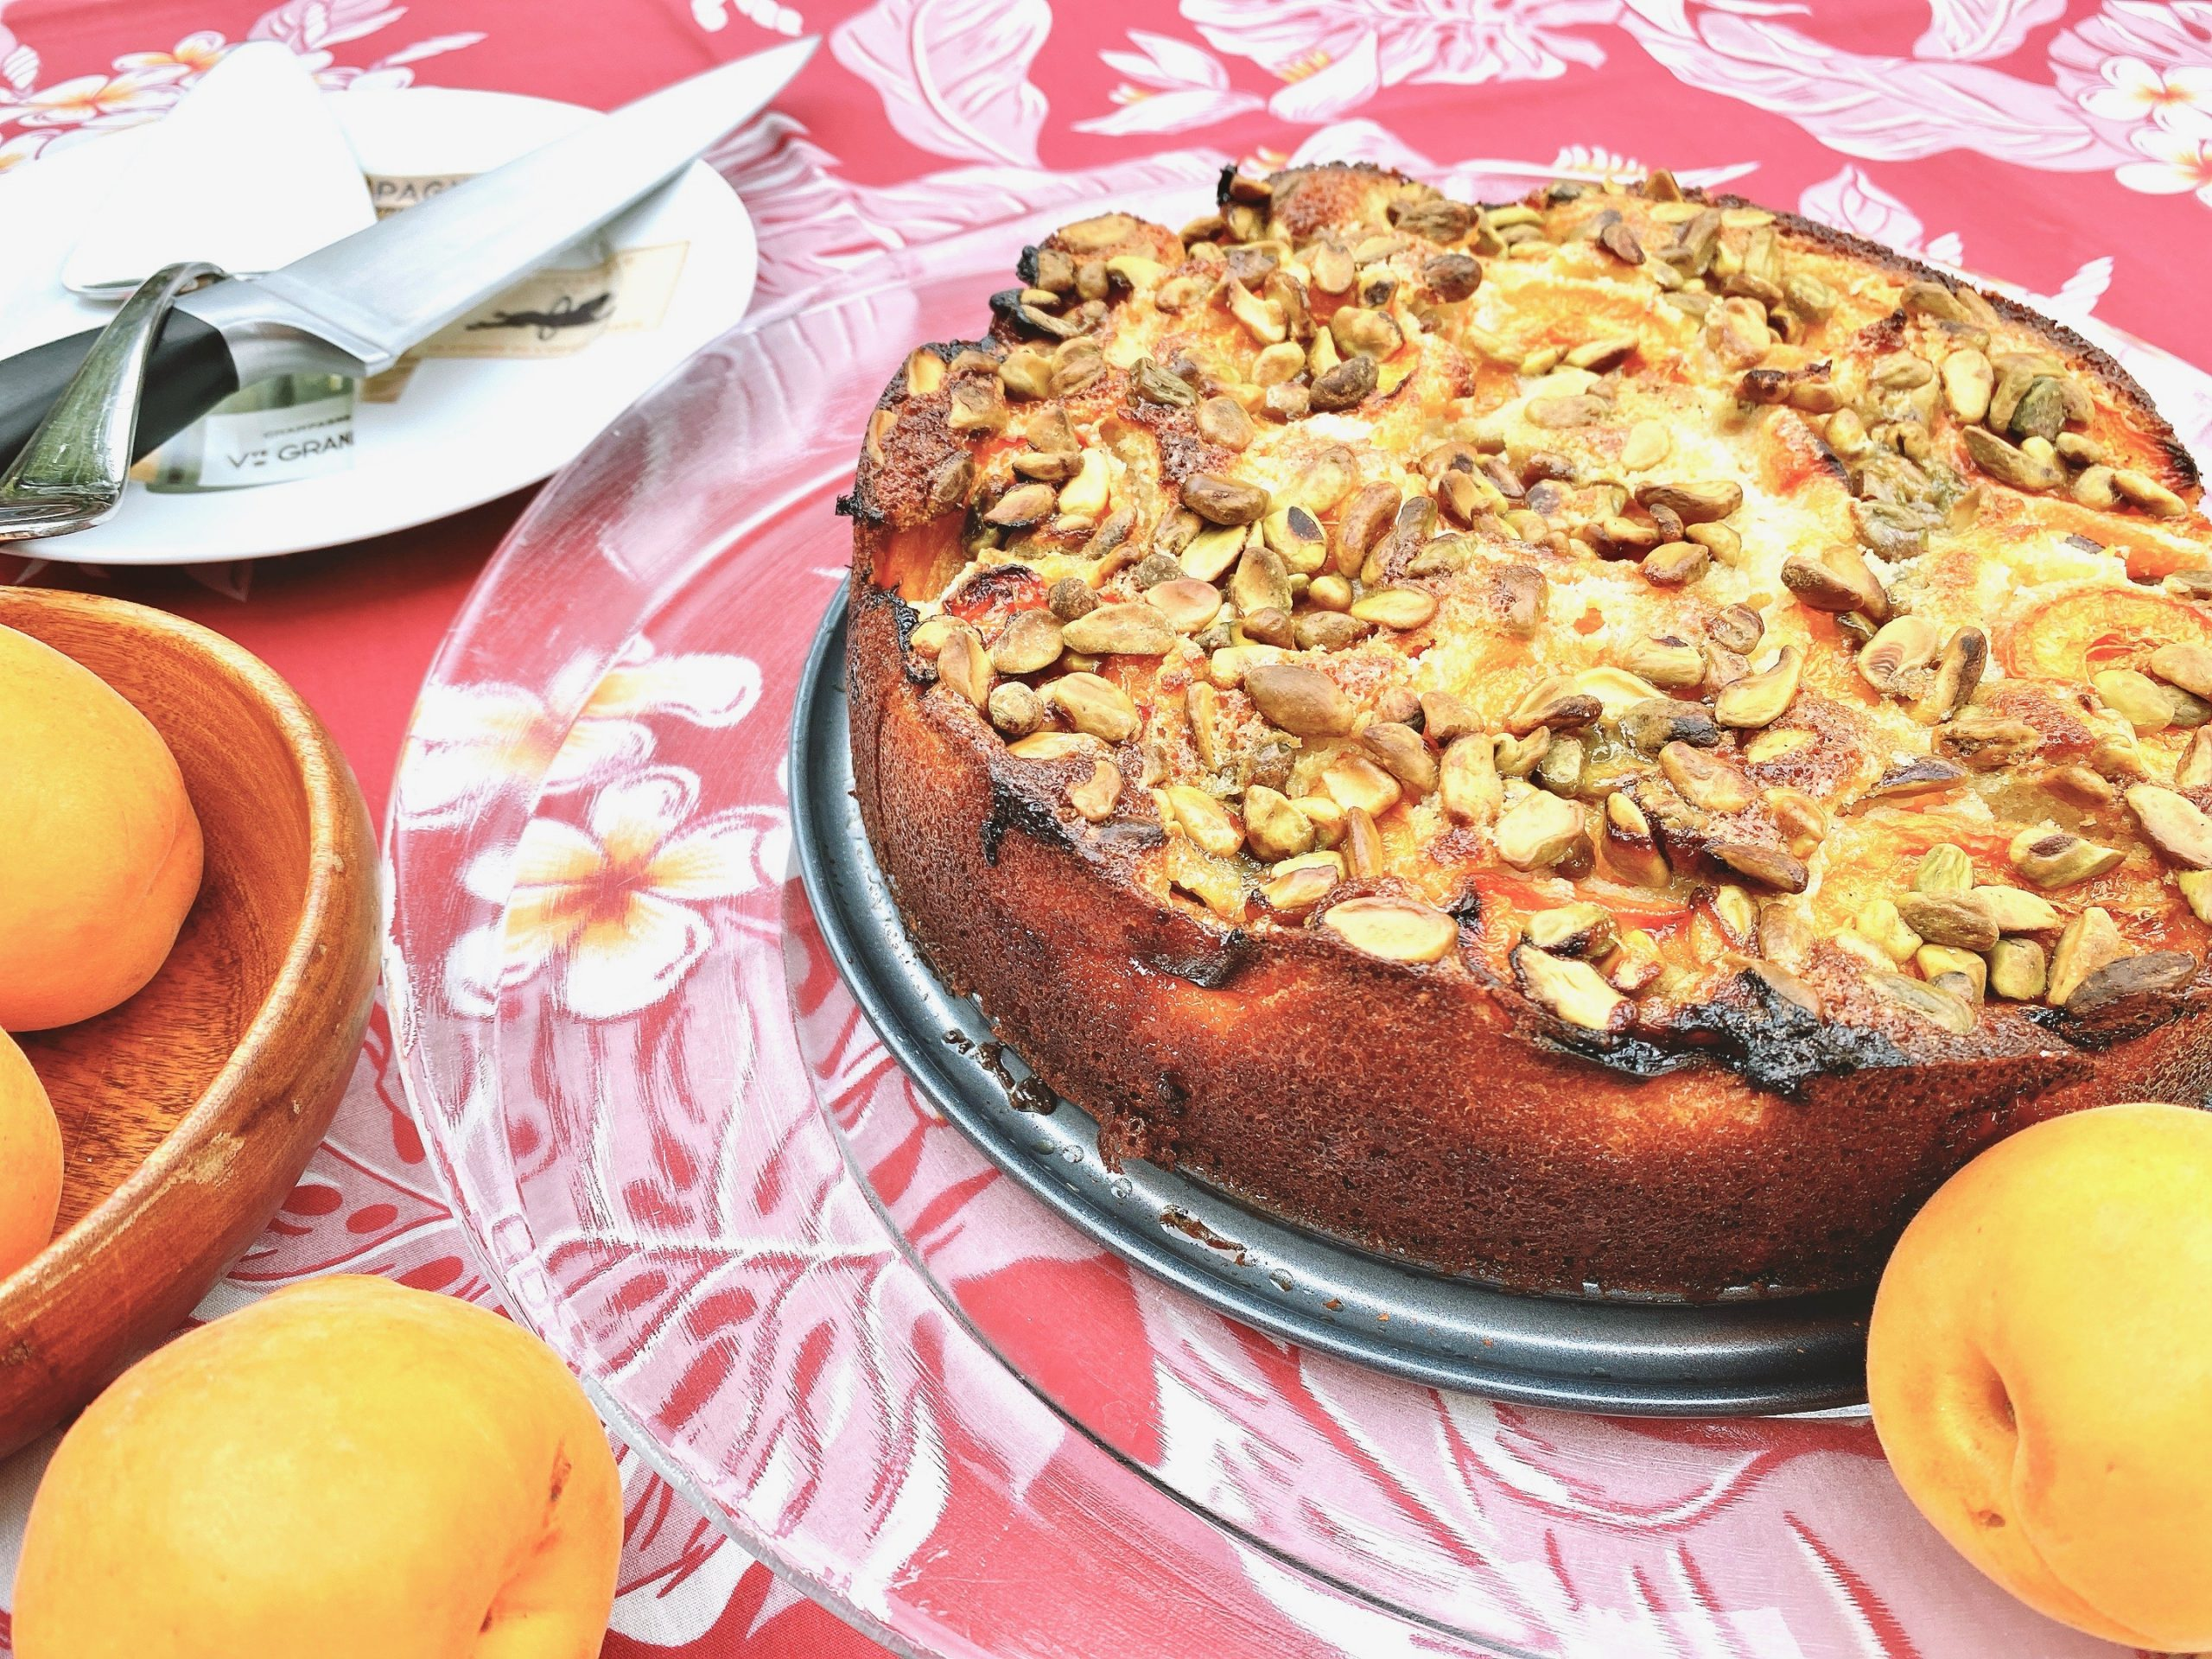 Whole Apricot Pistachio Cake on plate with fresh apricots and a Hawaiian themed tablecloth